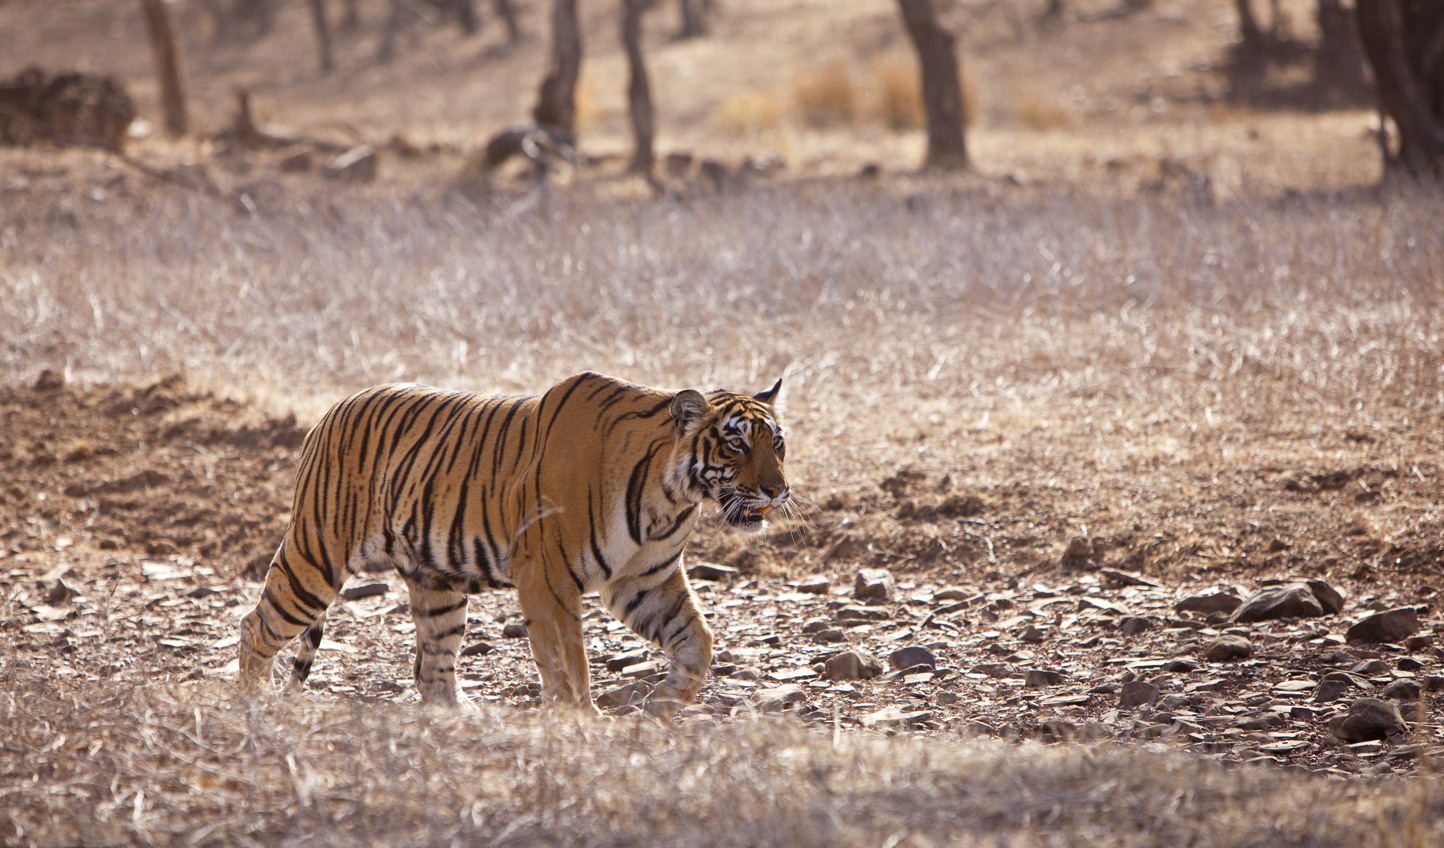 Ramble with tigers in Ranthambore